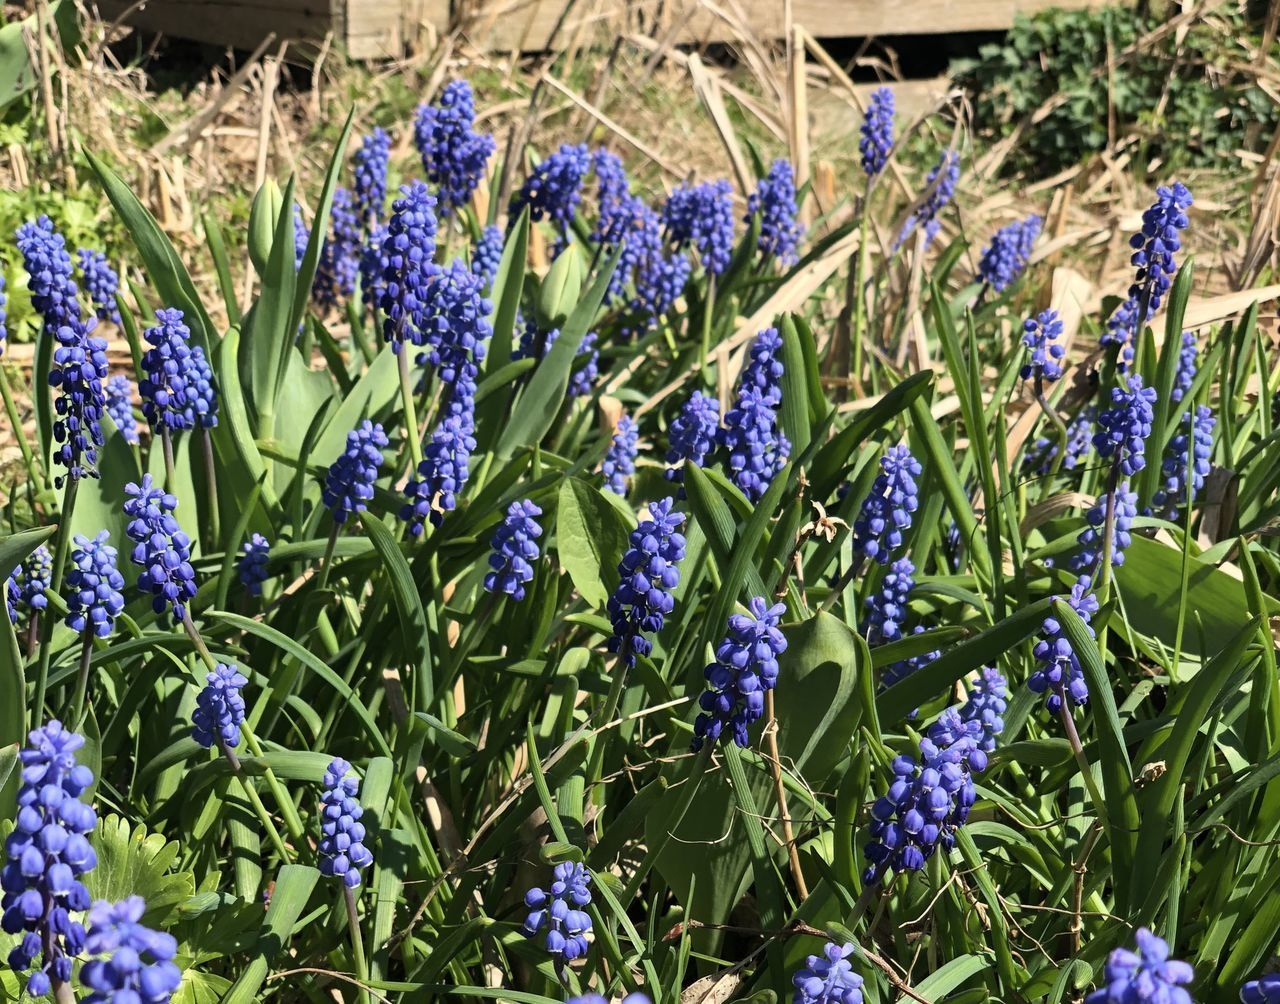 CLOSE-UP OF BLUE LAVENDER FLOWERS IN FIELD